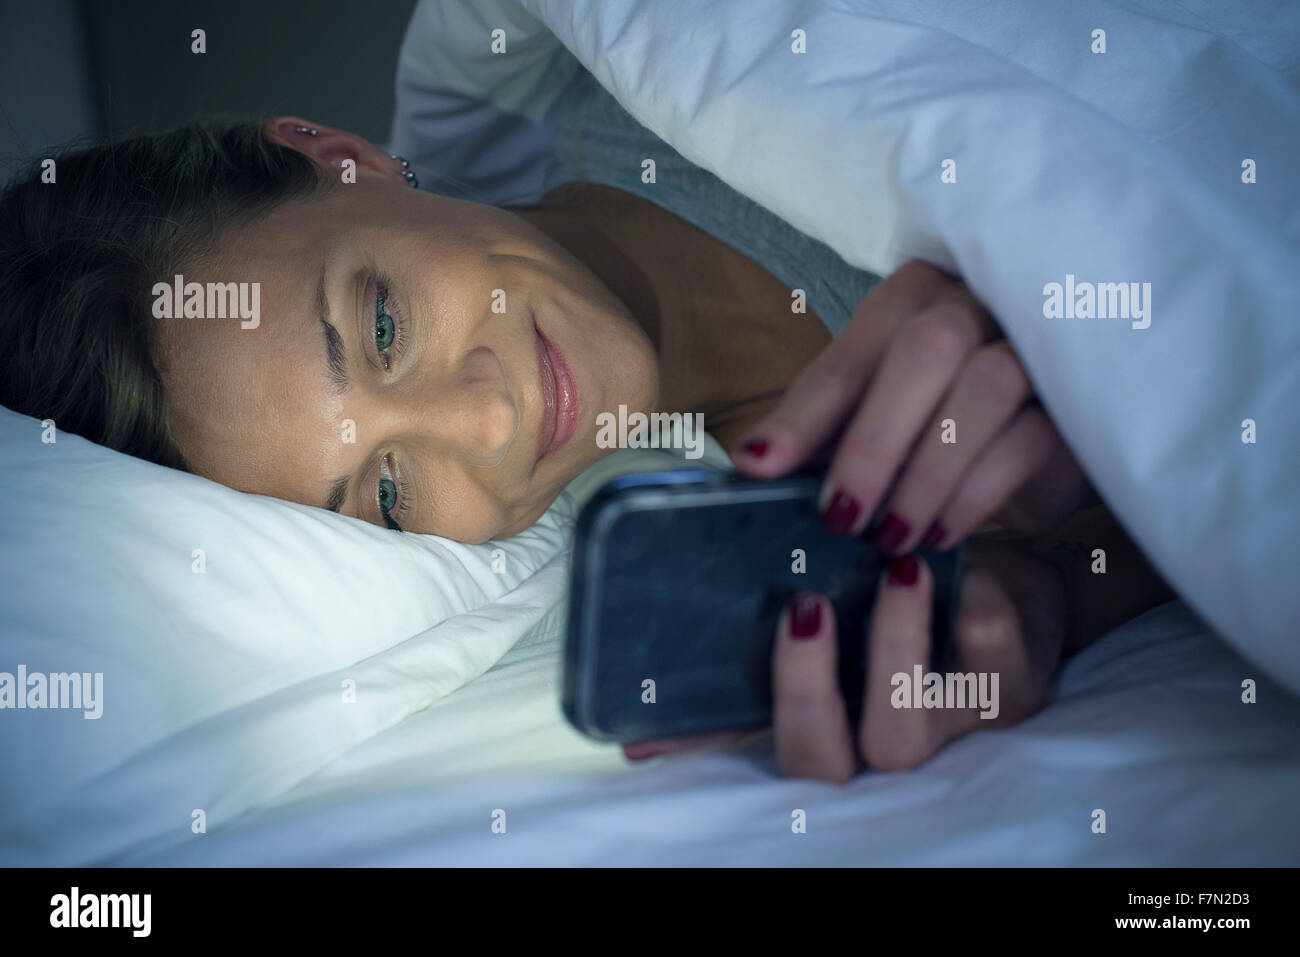 Woman lying in bed using smartphone Stock Photo